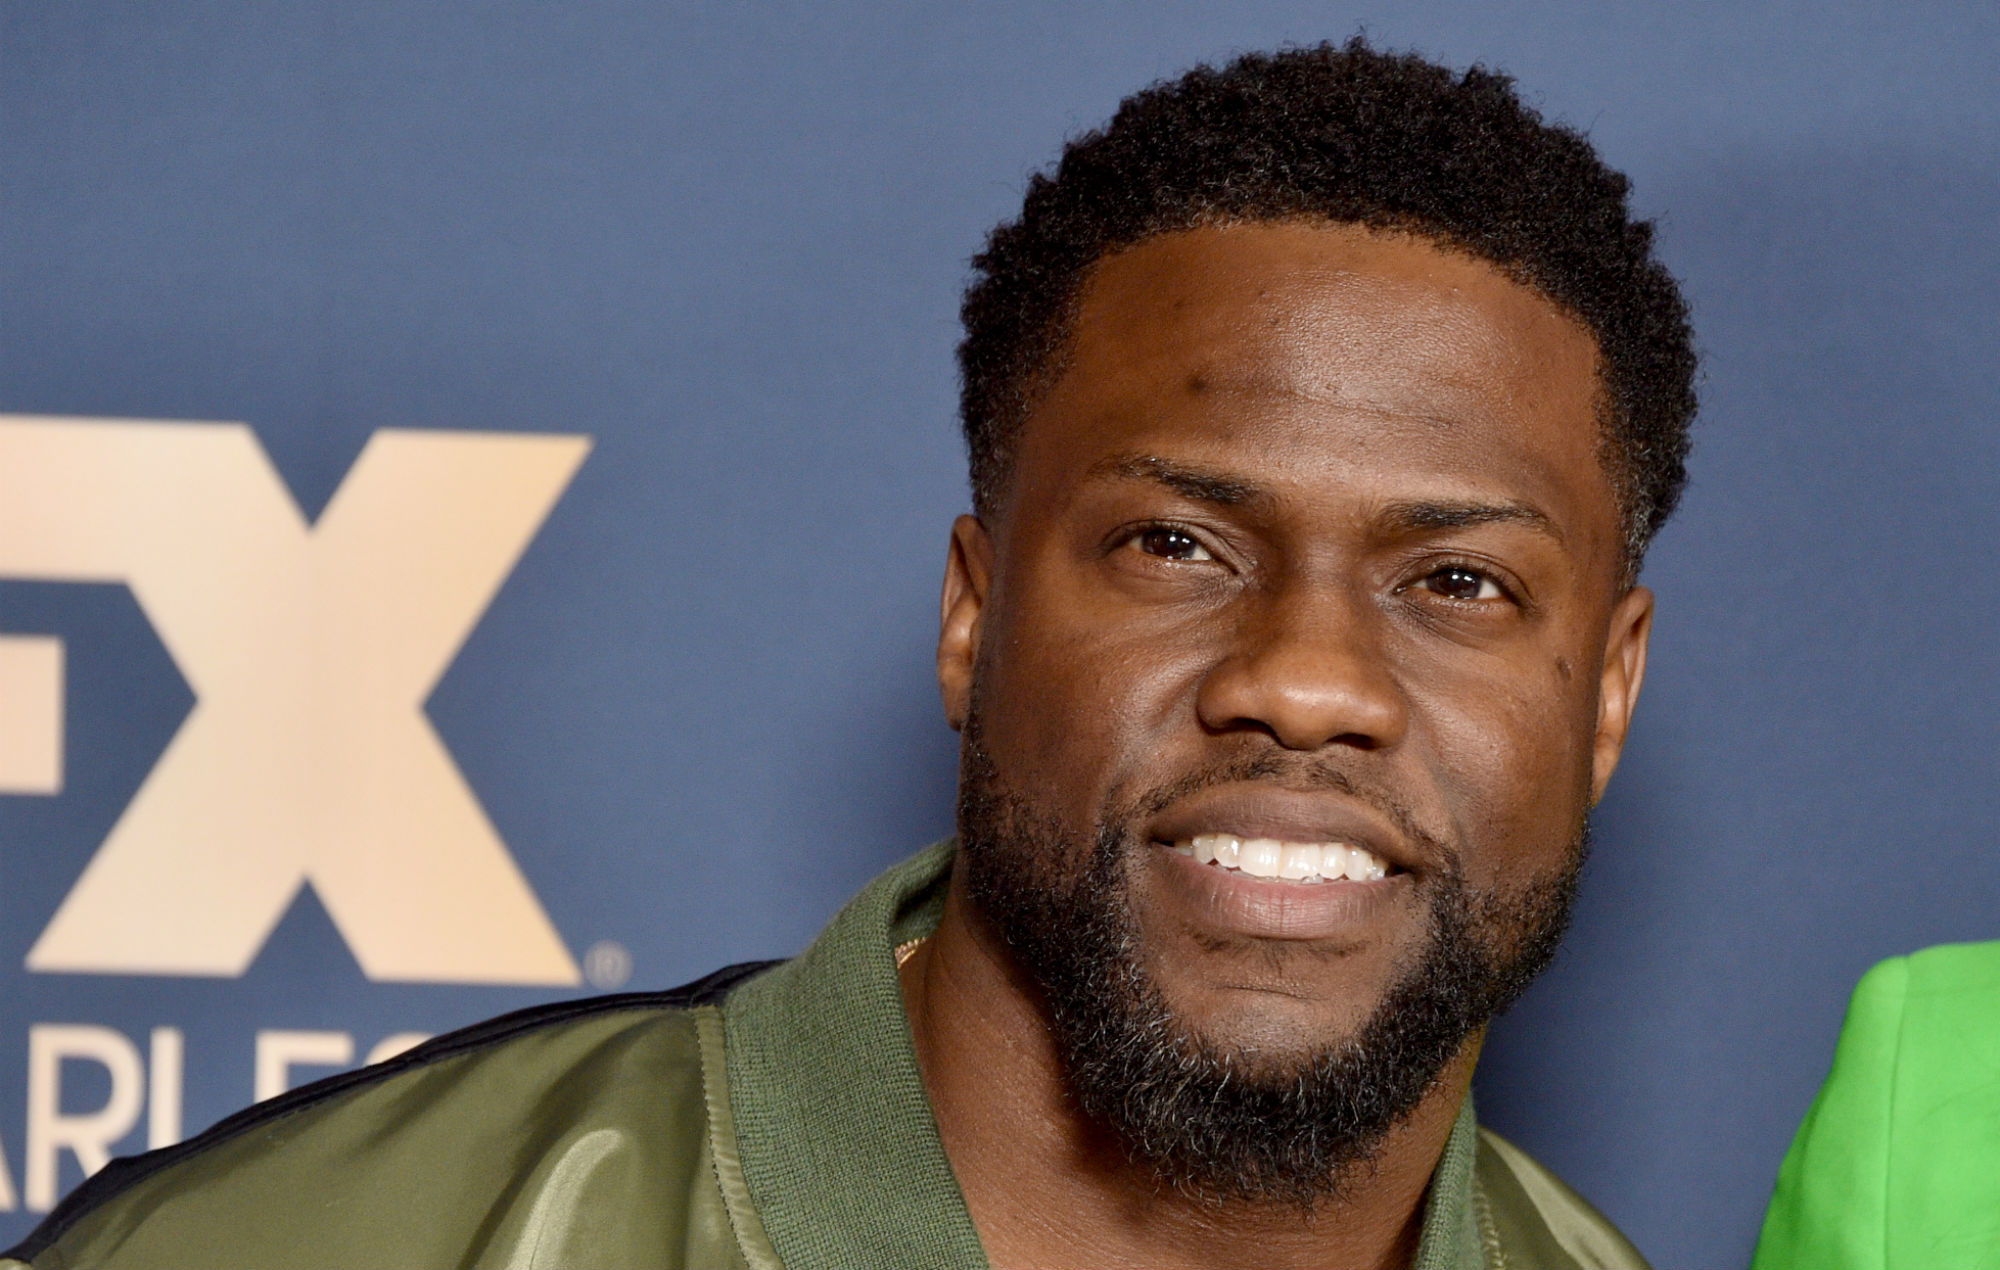 Kevin Hart attends the FX Networks' Star Walk Winter Press Tour 2020